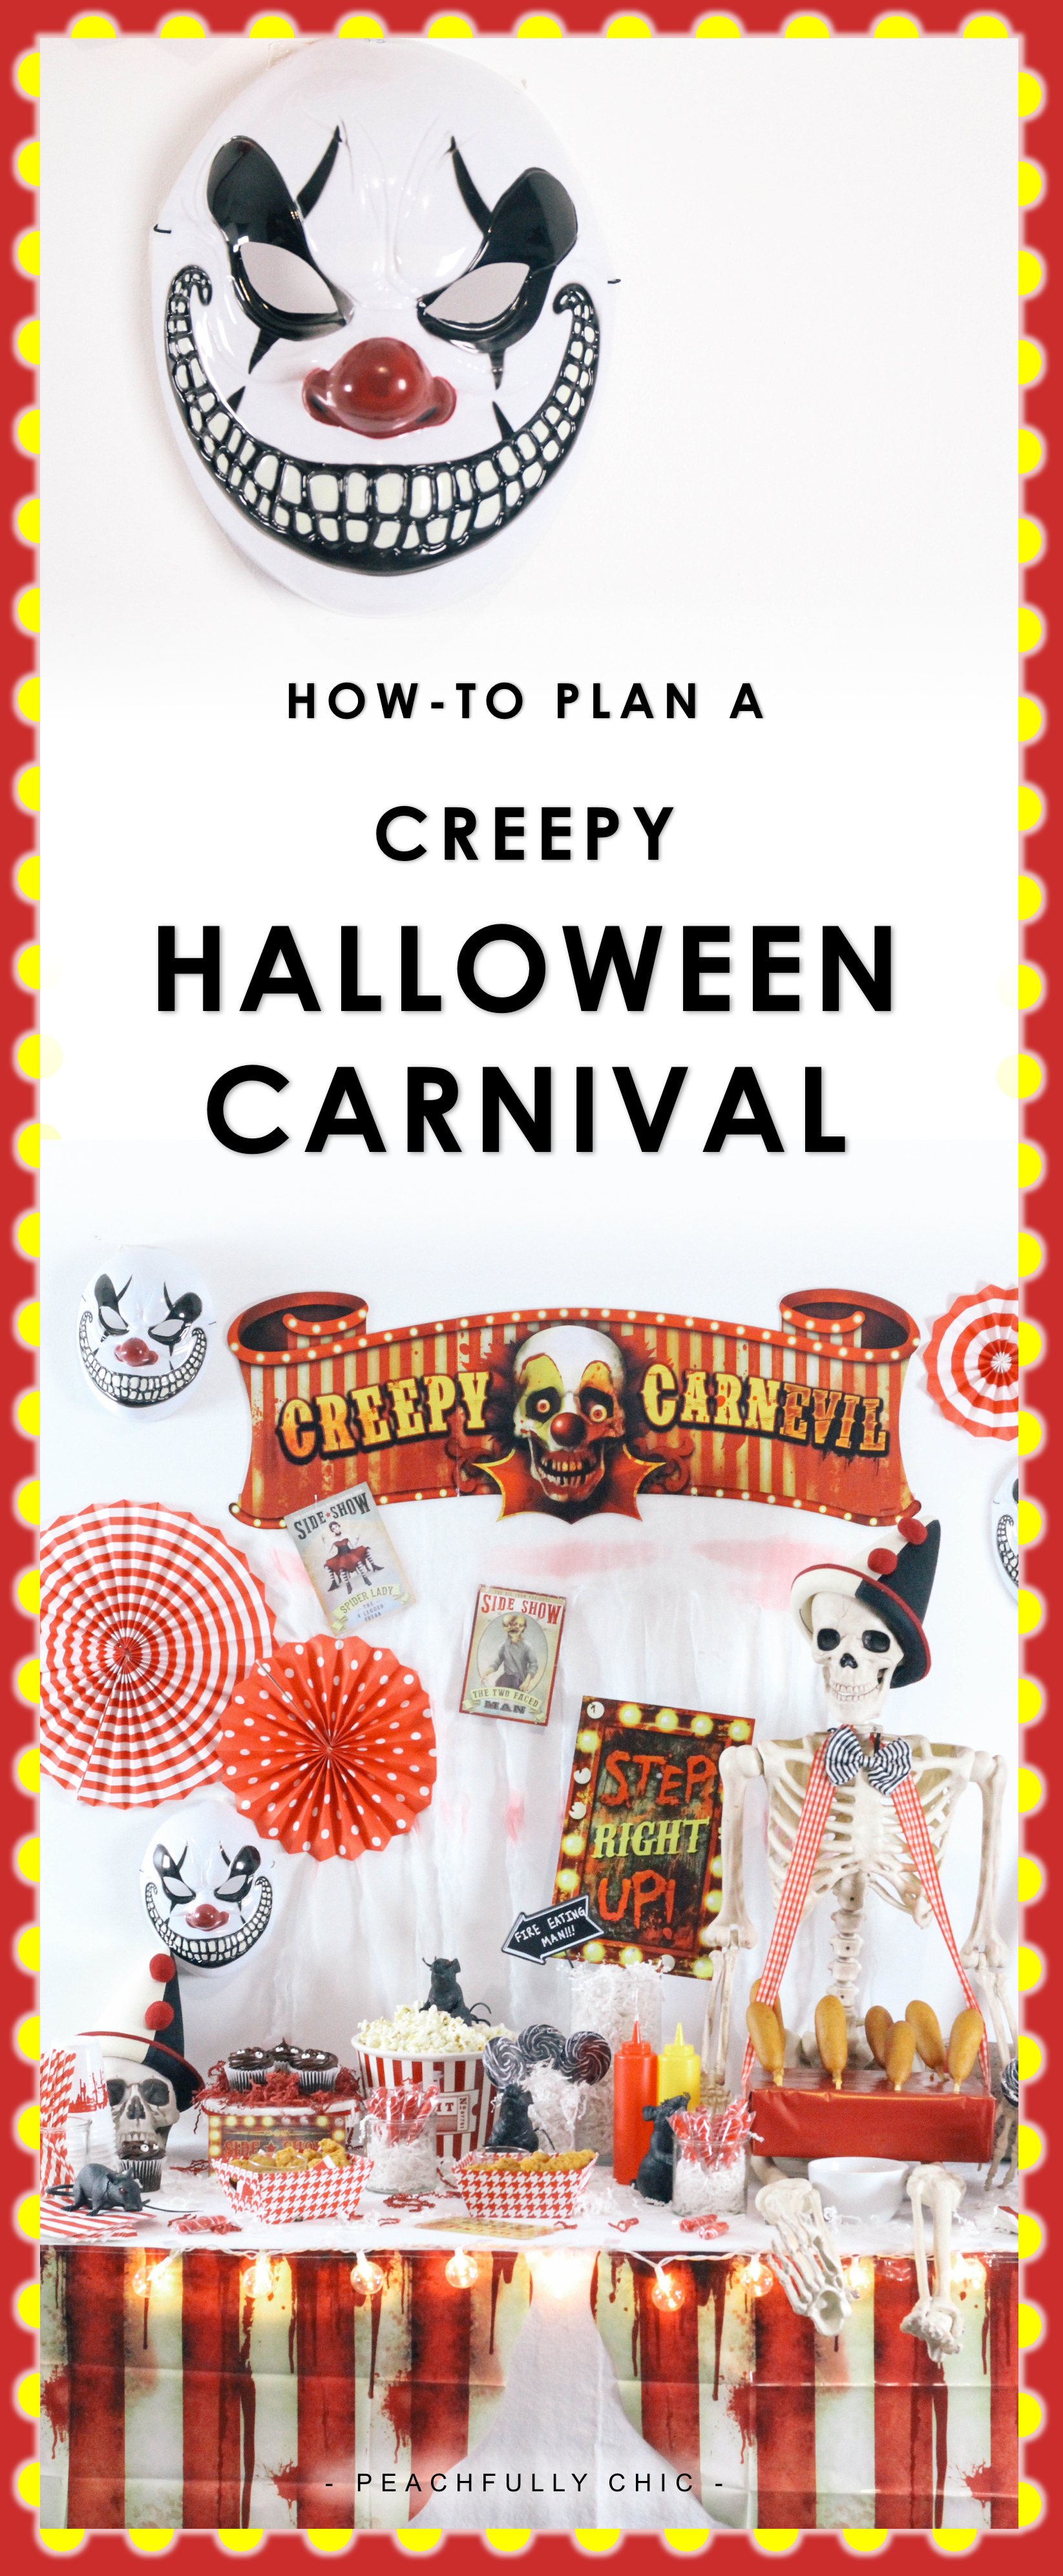 How-To-Plan-a-Creepy-Carnival-Party-Halloween